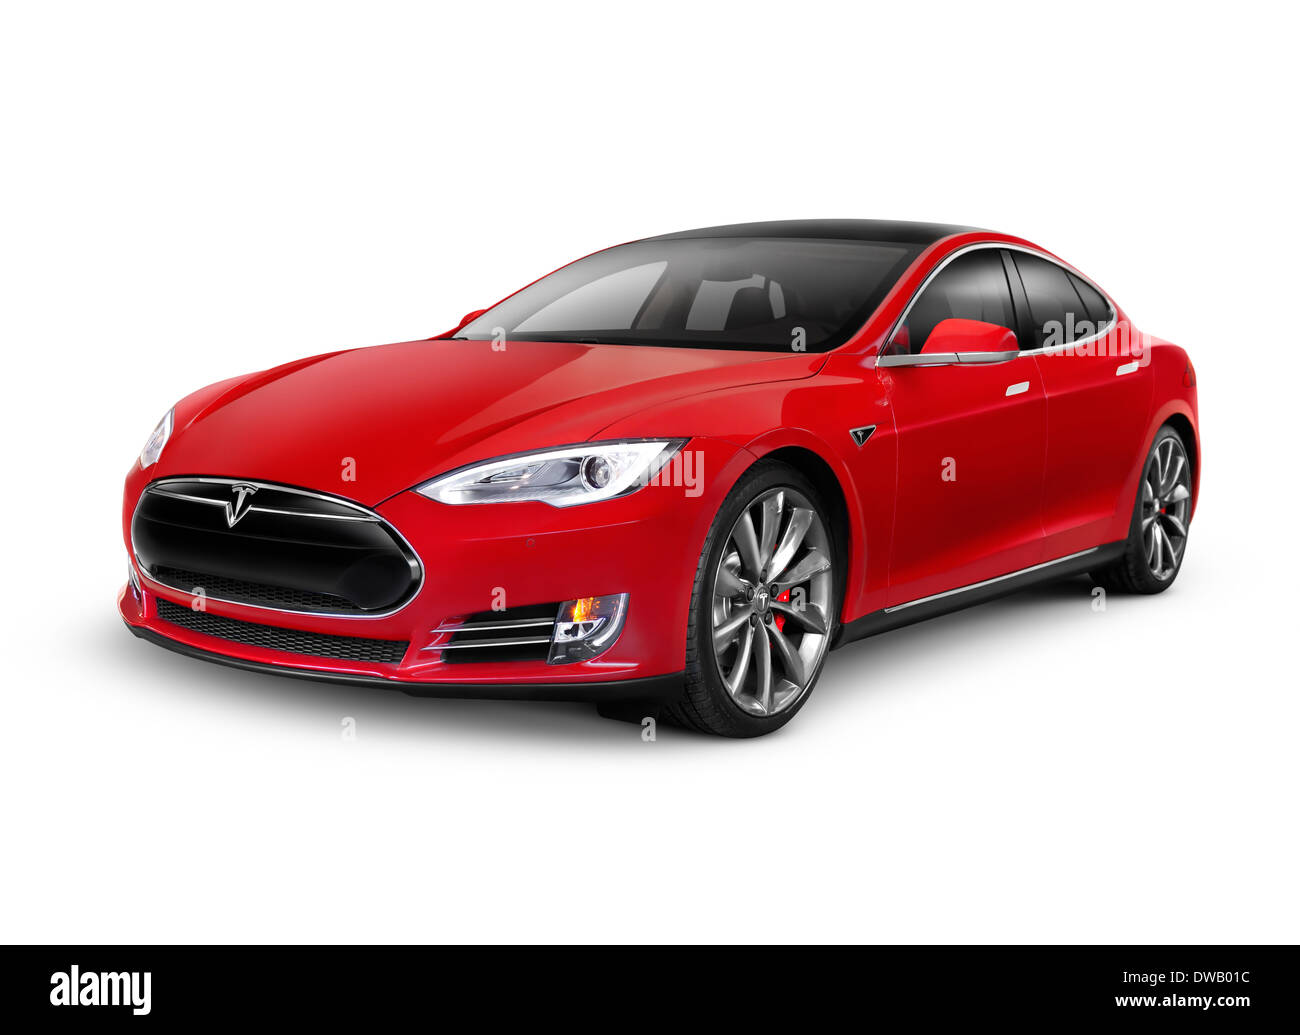 red 2014 tesla model s luxury electric car isolated on white stock photo 67239016 alamy. Black Bedroom Furniture Sets. Home Design Ideas